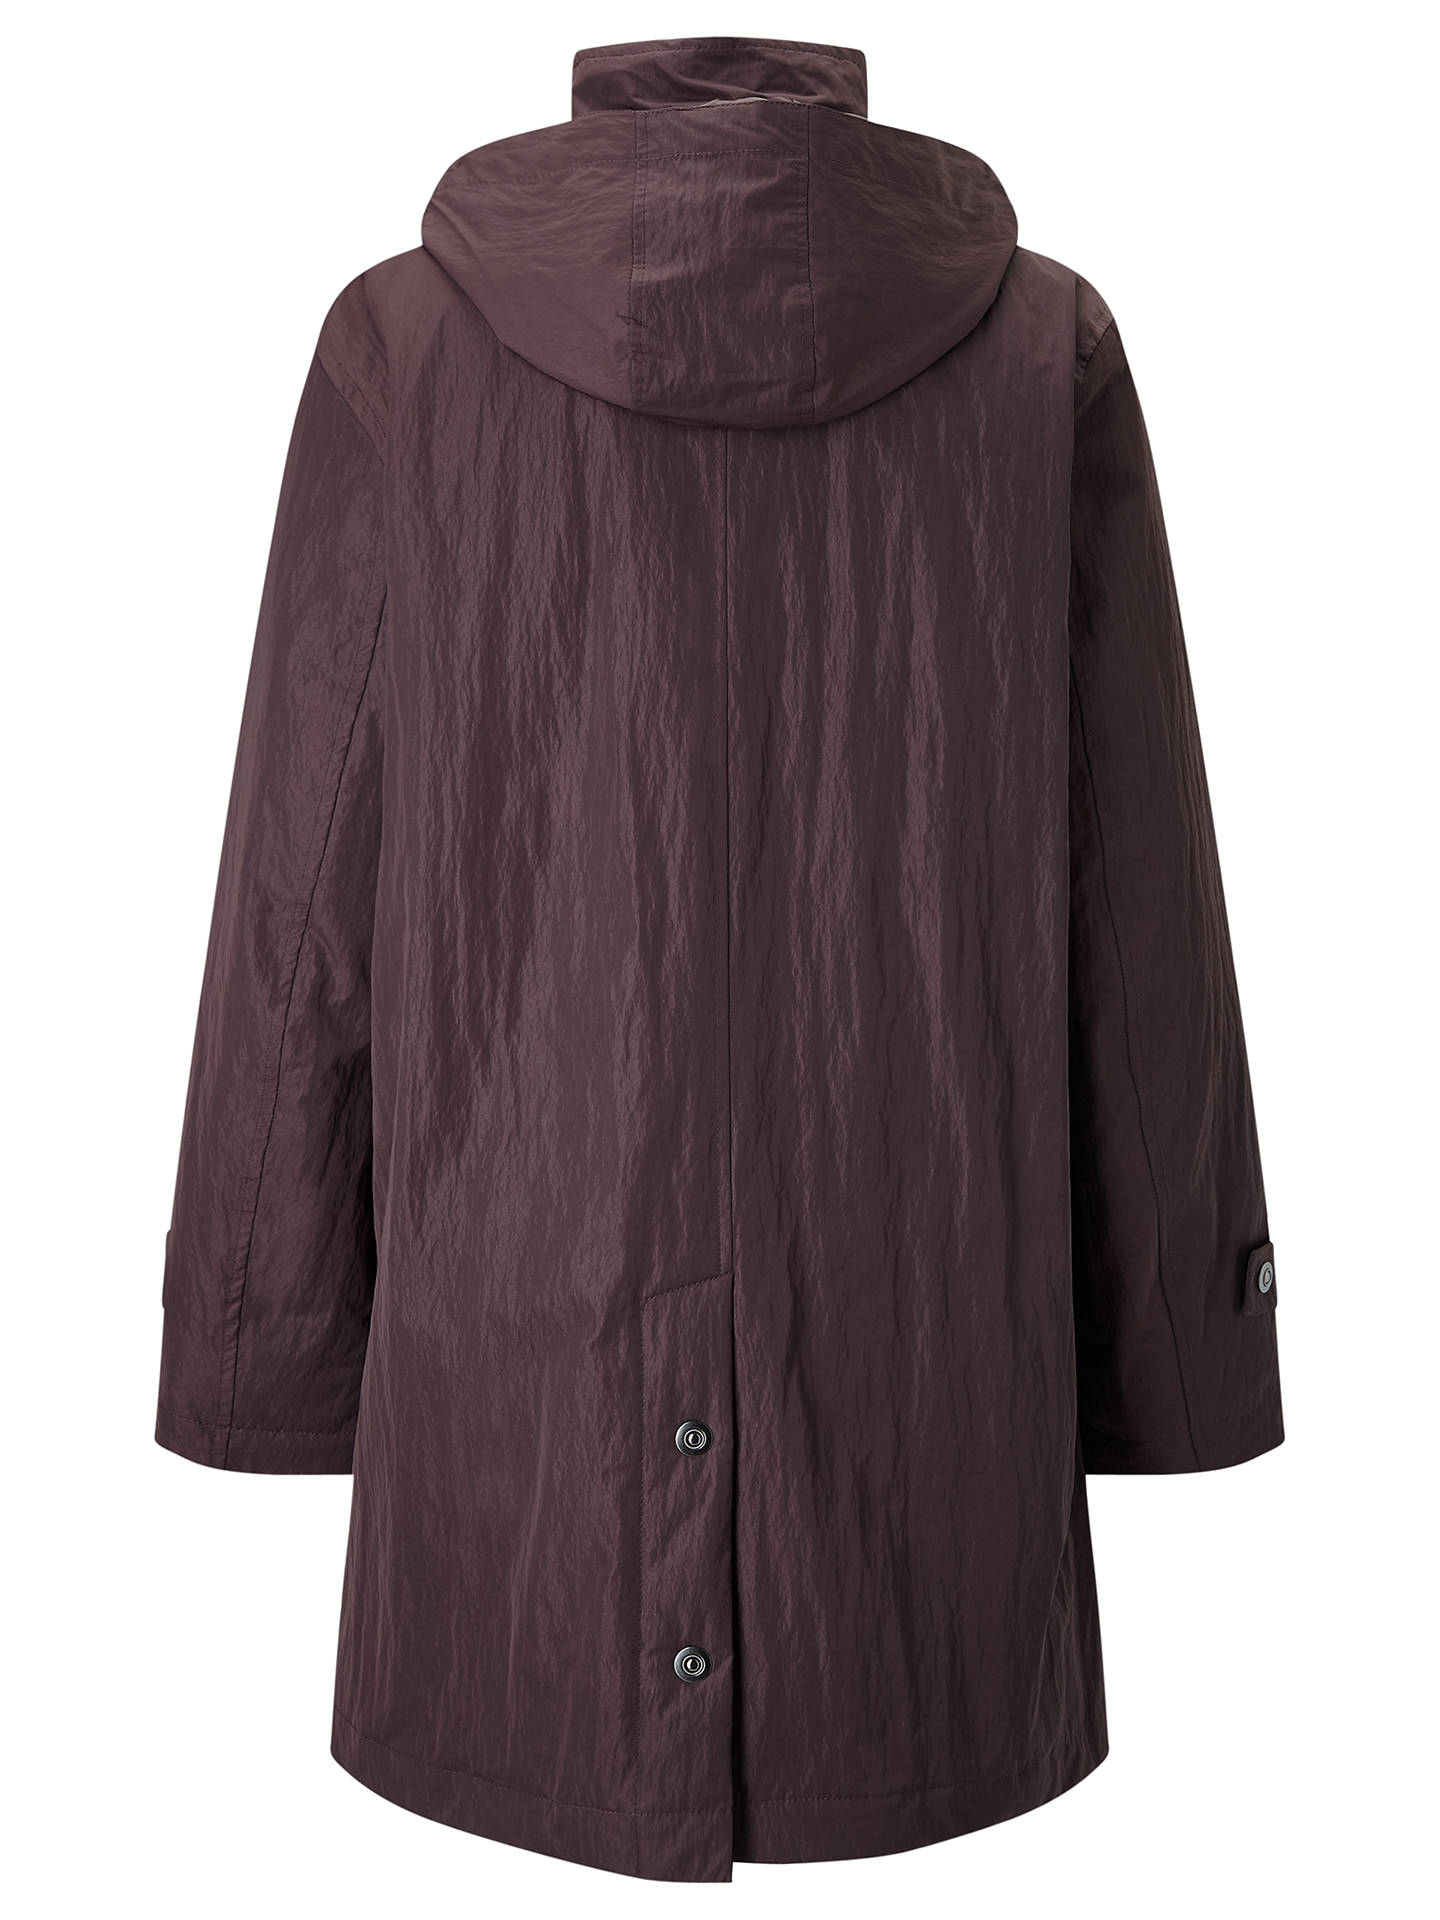 BuyFour Seasons Hooded Caban Coat, Grape, XS Online at johnlewis.com